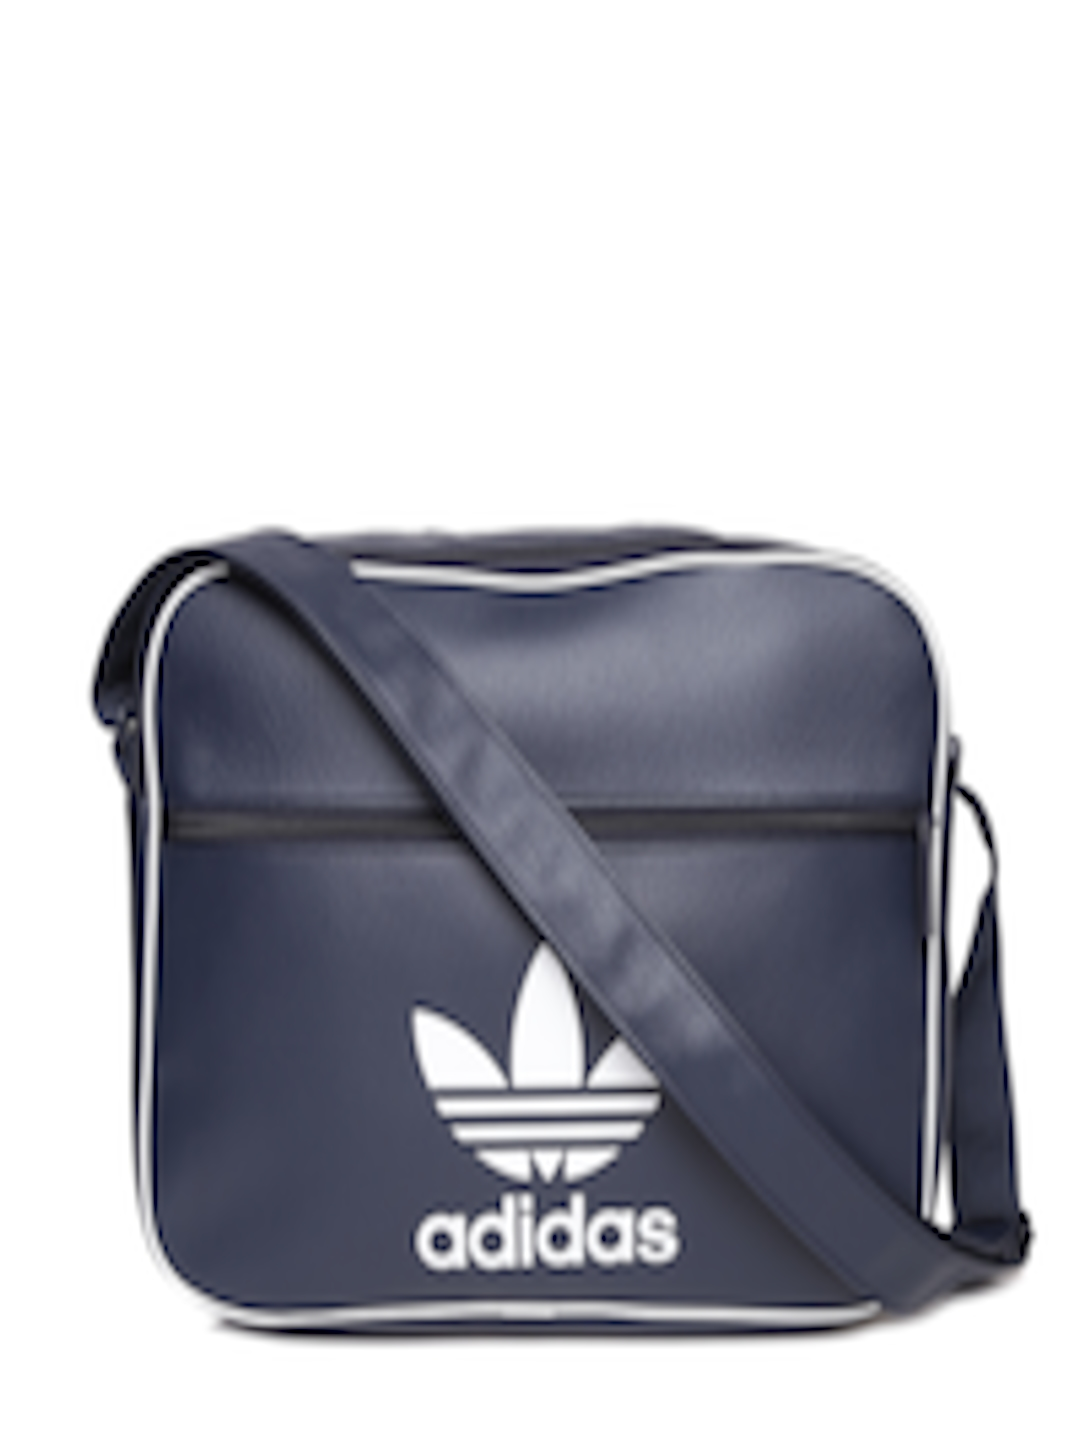 c076c9d7c5 Buy ADIDAS Originals Unisex Navy Airliner AC Clean Messenger Bag - Messenger  Bag for Unisex 1808752 | Myntra